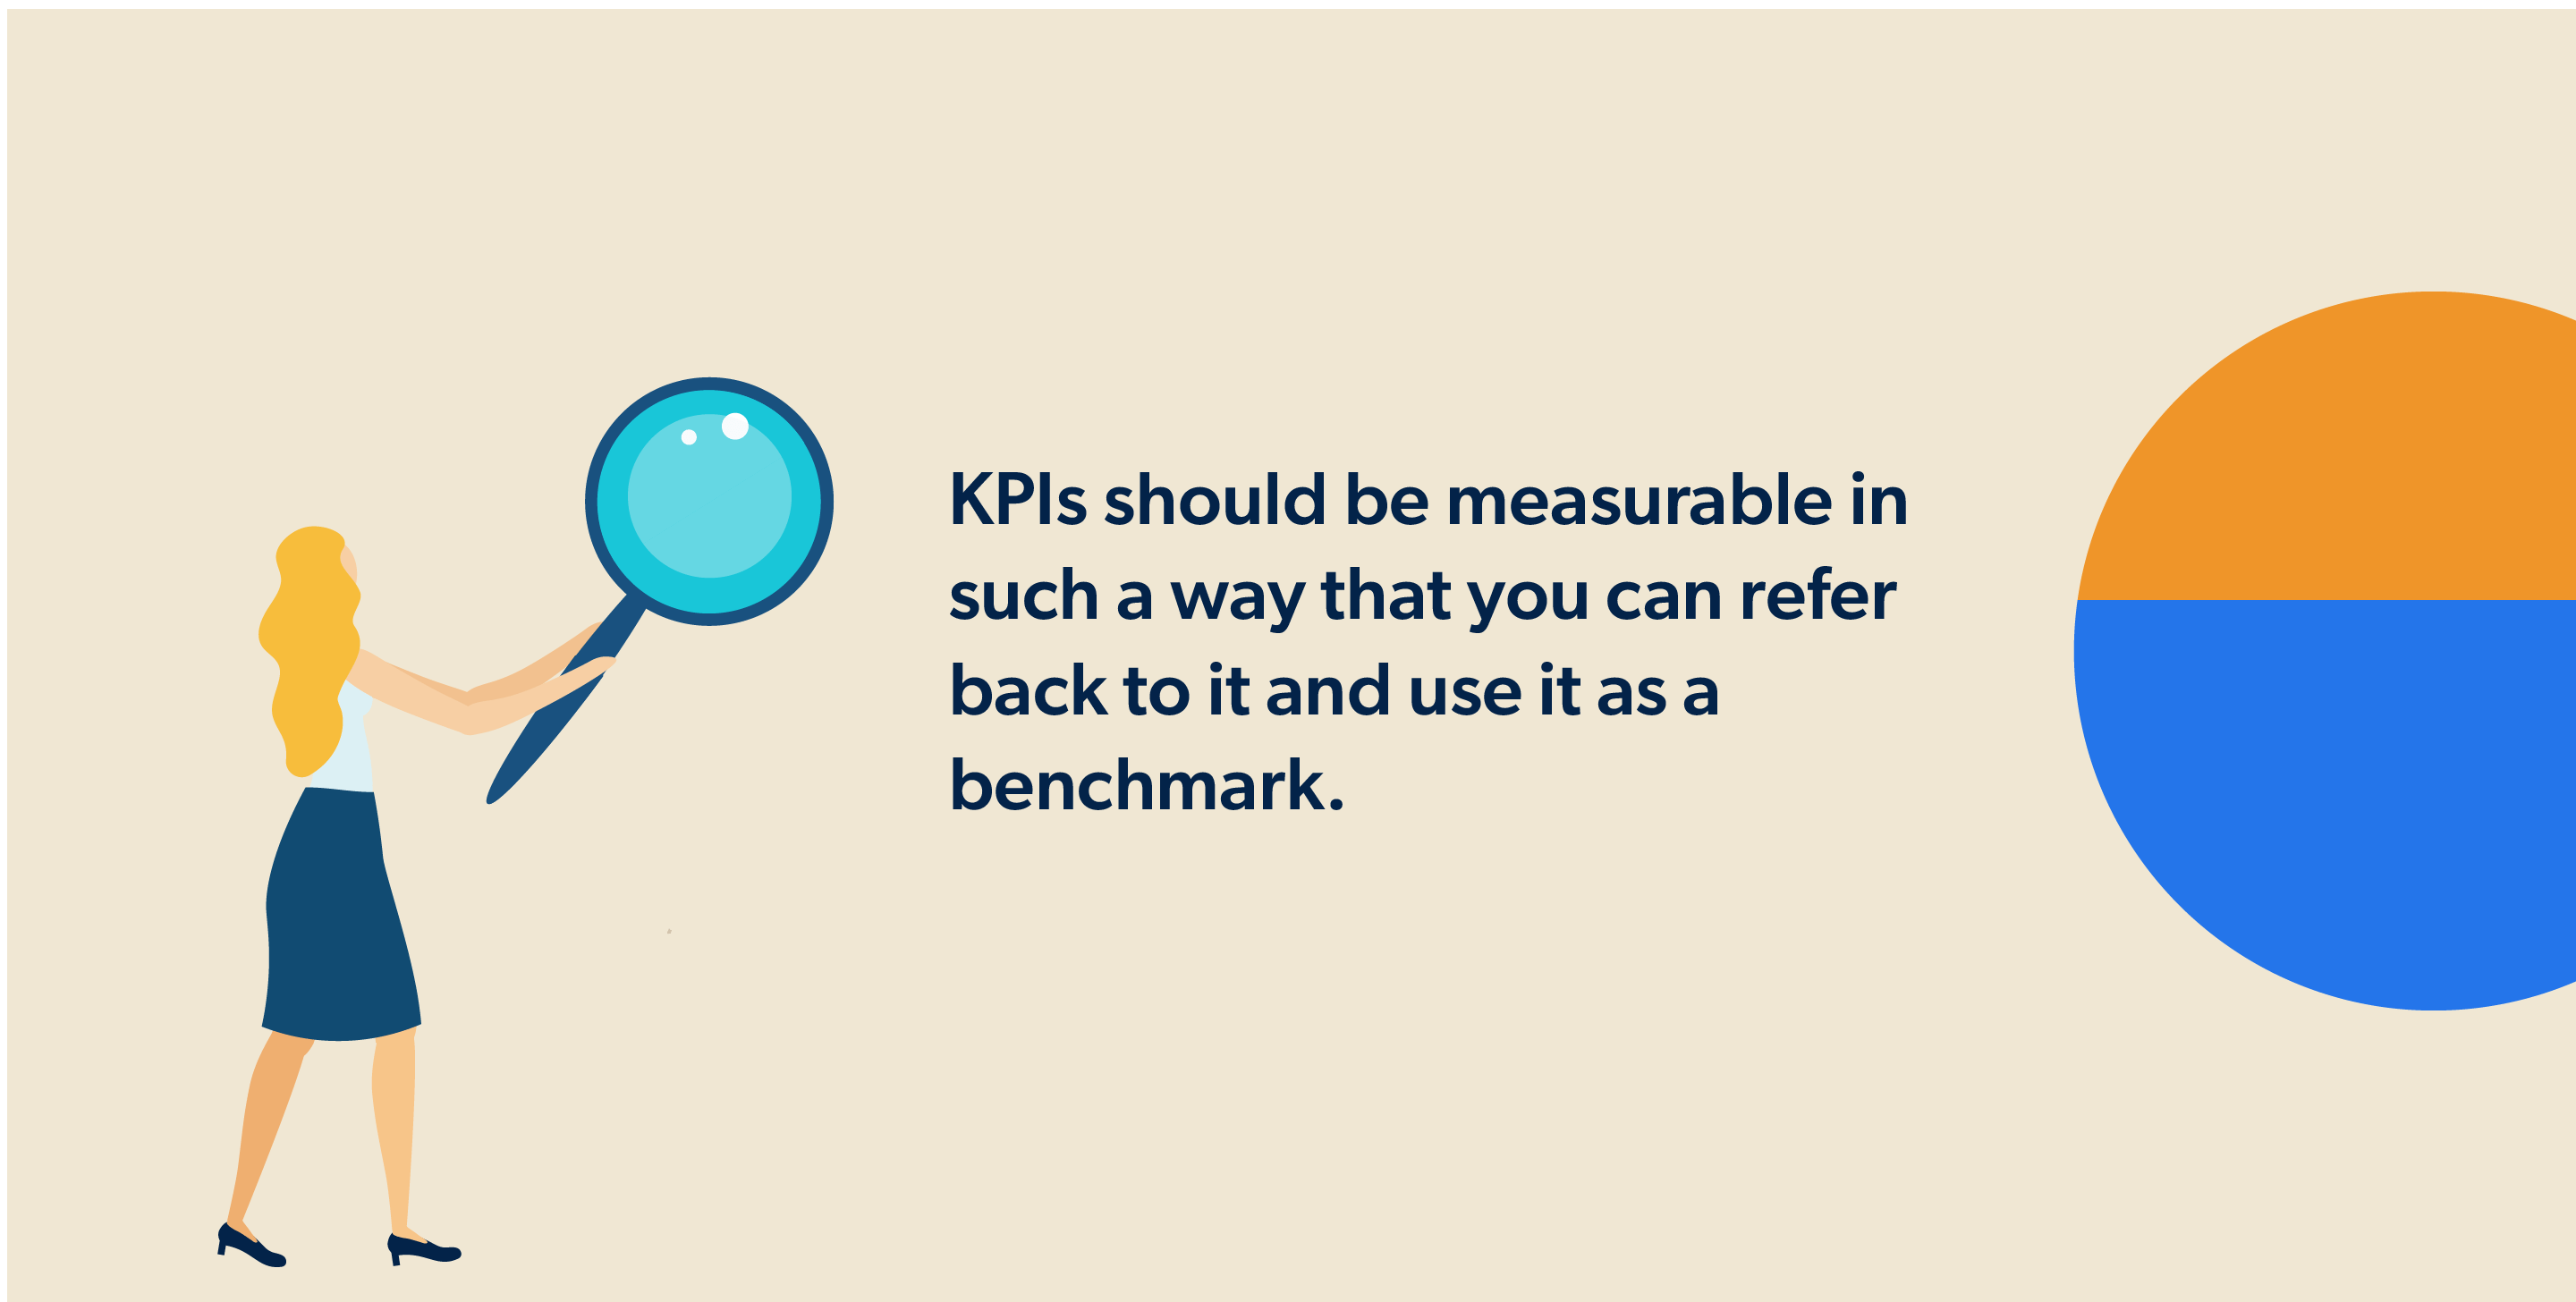 KPIs should be measurable in such a way that you can refer back to it and use it as a benchmark.